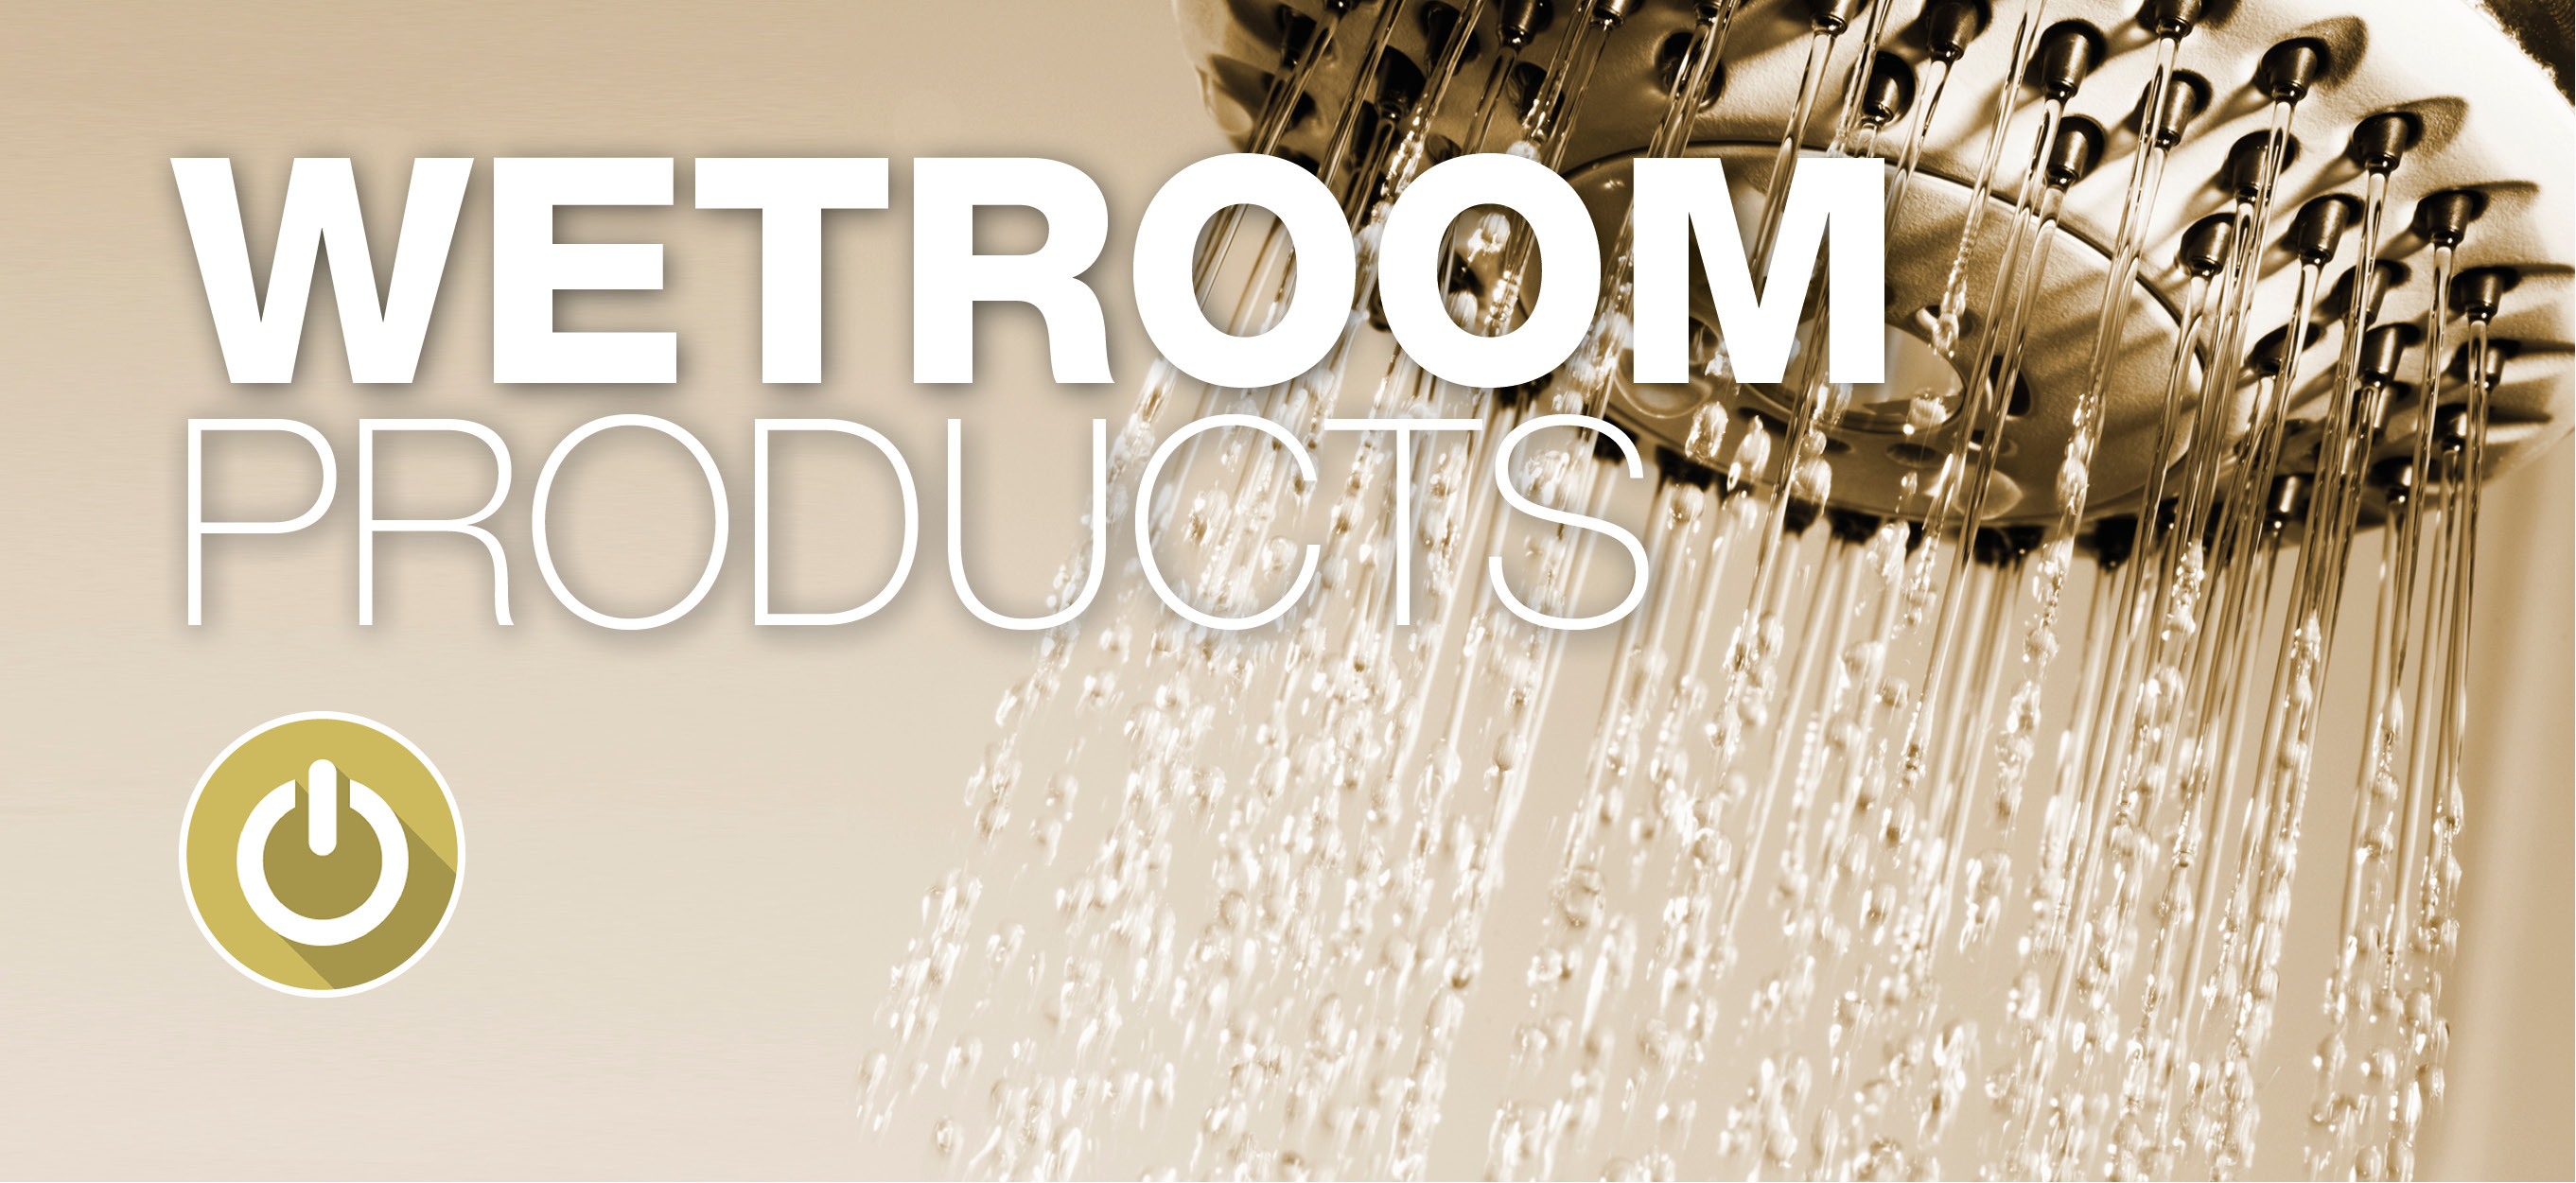 Wetroom products